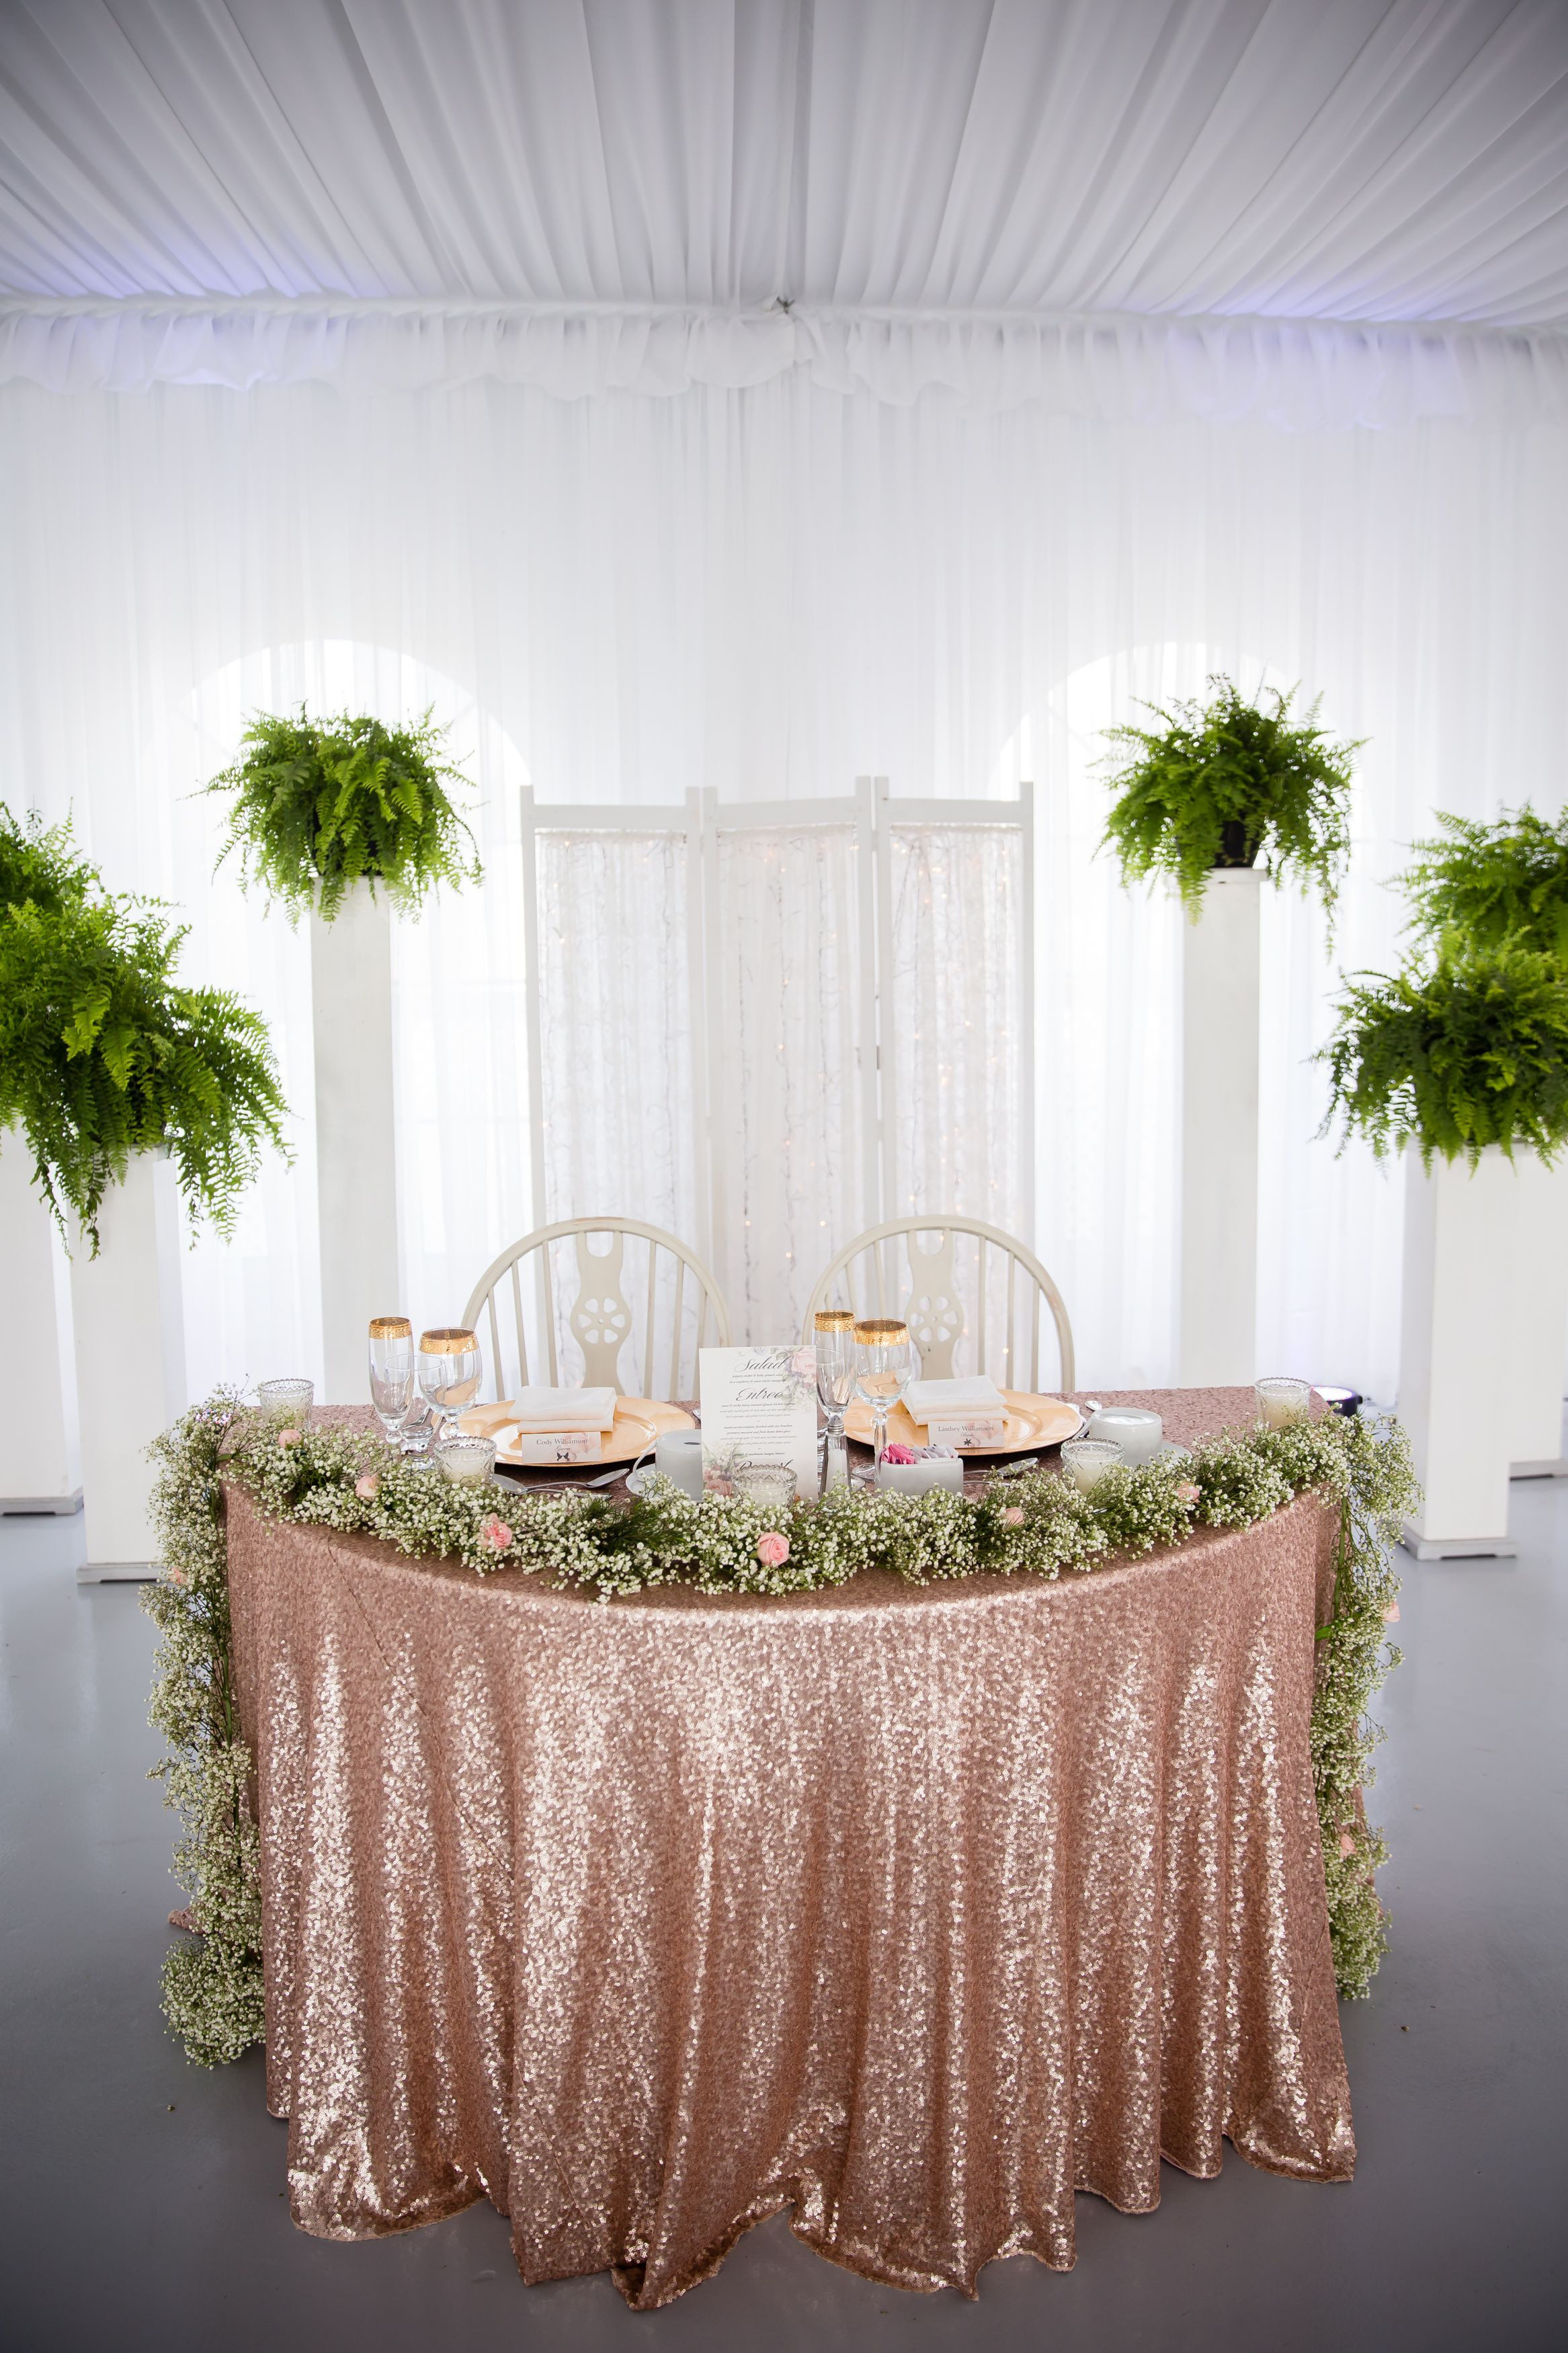 small rose gold vase of our sweetheart table rose gold glitter table cloth with babys for rose gold glitter table cloth with babys breath and tiny pink roses we opted for a simple lace back drop behind us